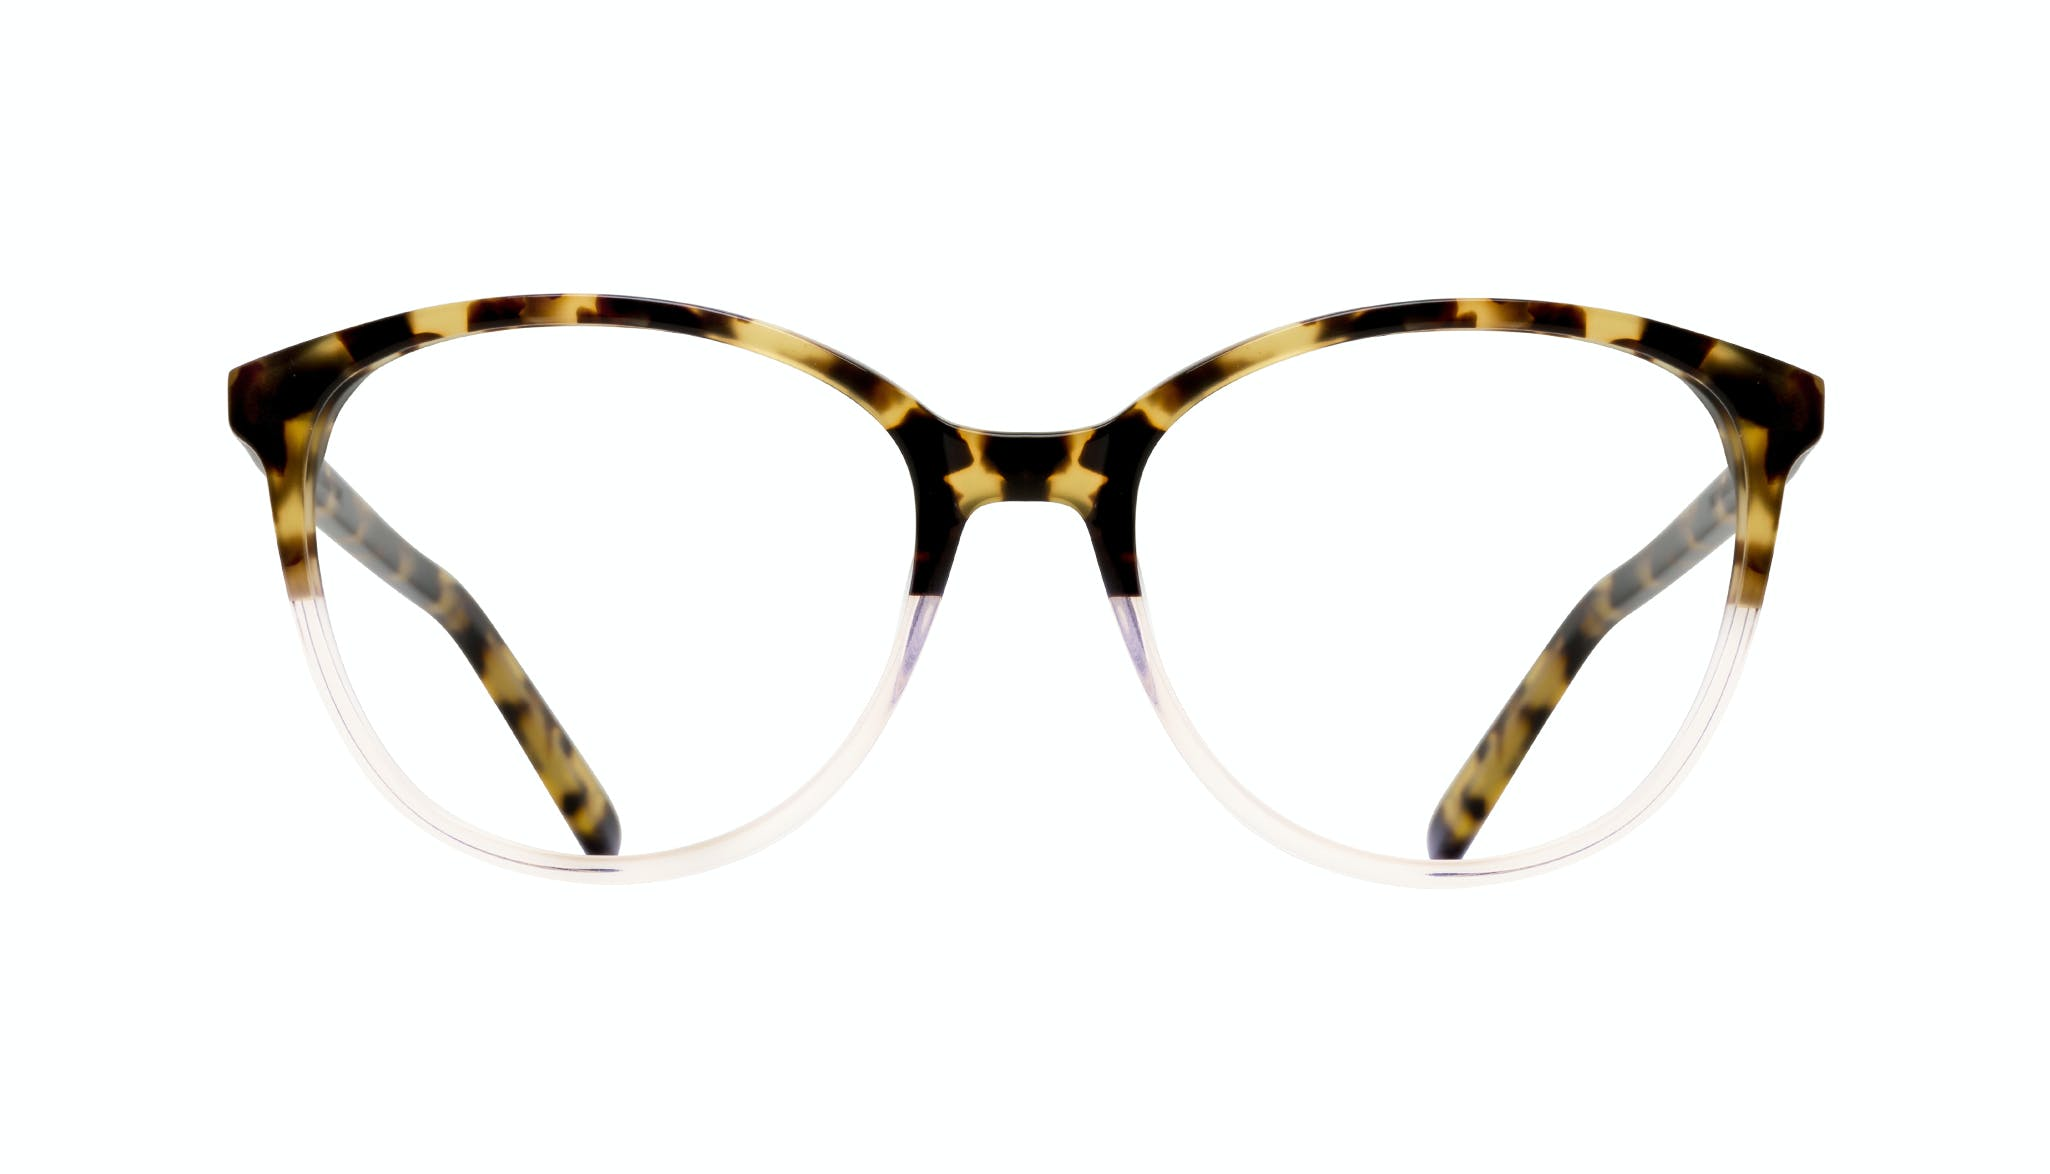 Affordable Fashion Glasses Cat Eye Round Eyeglasses Women Imagine Blond Tort Front